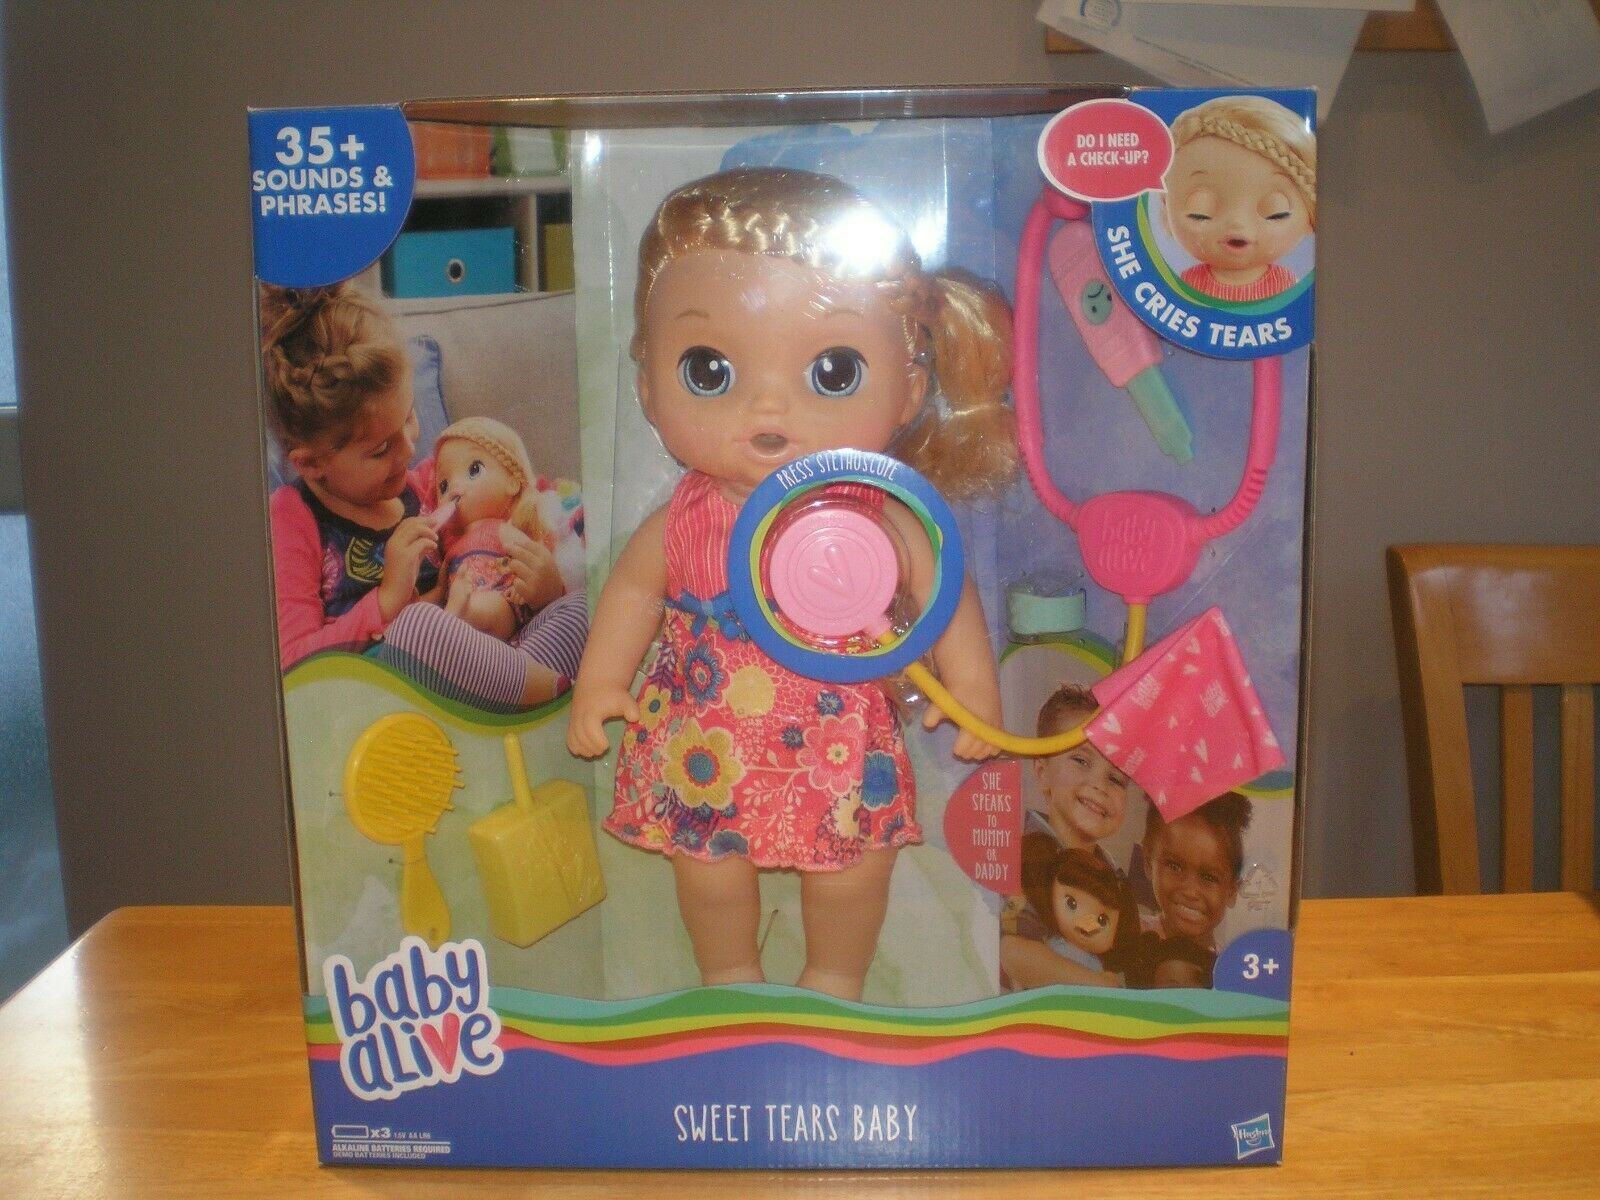 Baby Alive Sweet Tears Blonde Baby Girl Doll 35+ Sounds And Phrases